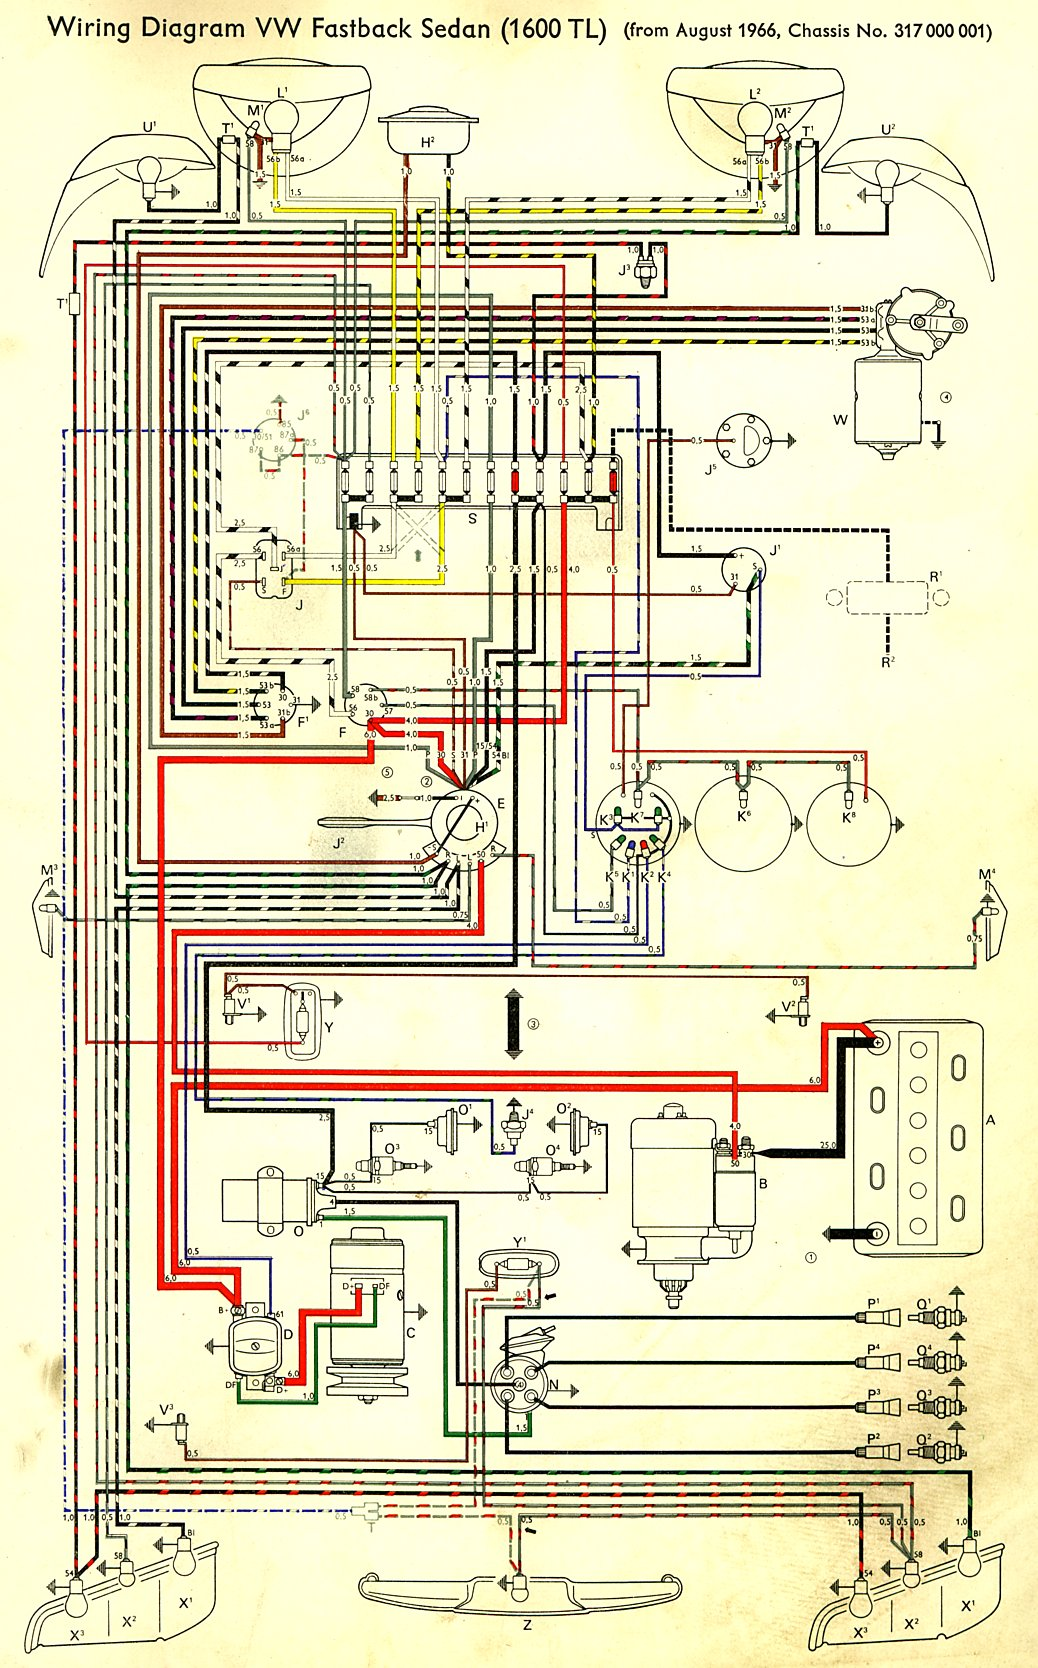 type3_1600TL_67 vw bus wiring diagram 1965 vw bus wiring diagram \u2022 wiring diagrams 1971 vw beetle wiring diagram at aneh.co